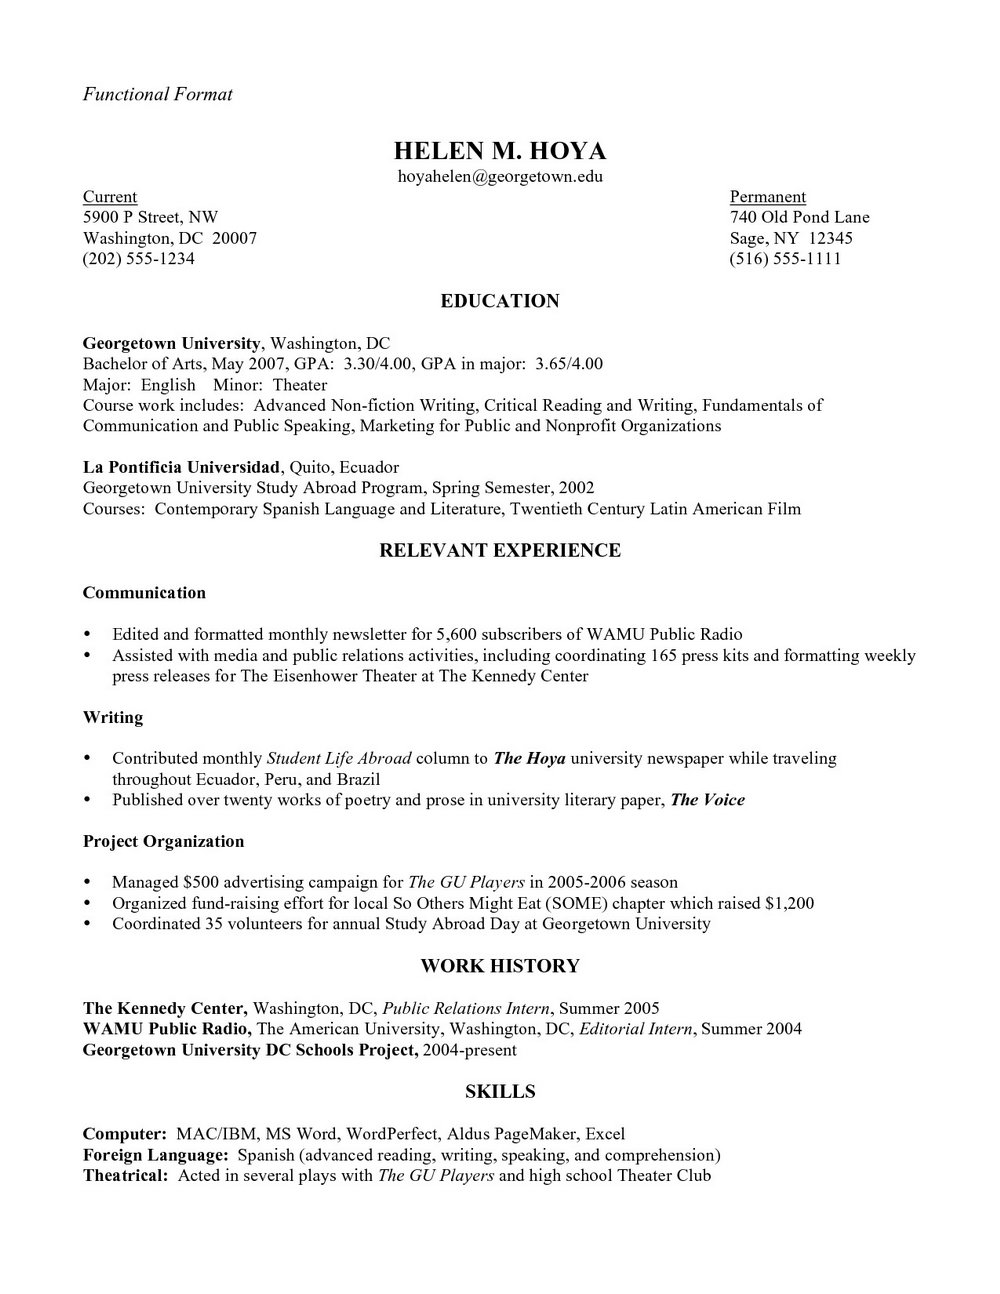 Customer Service Resume Samples Free Word